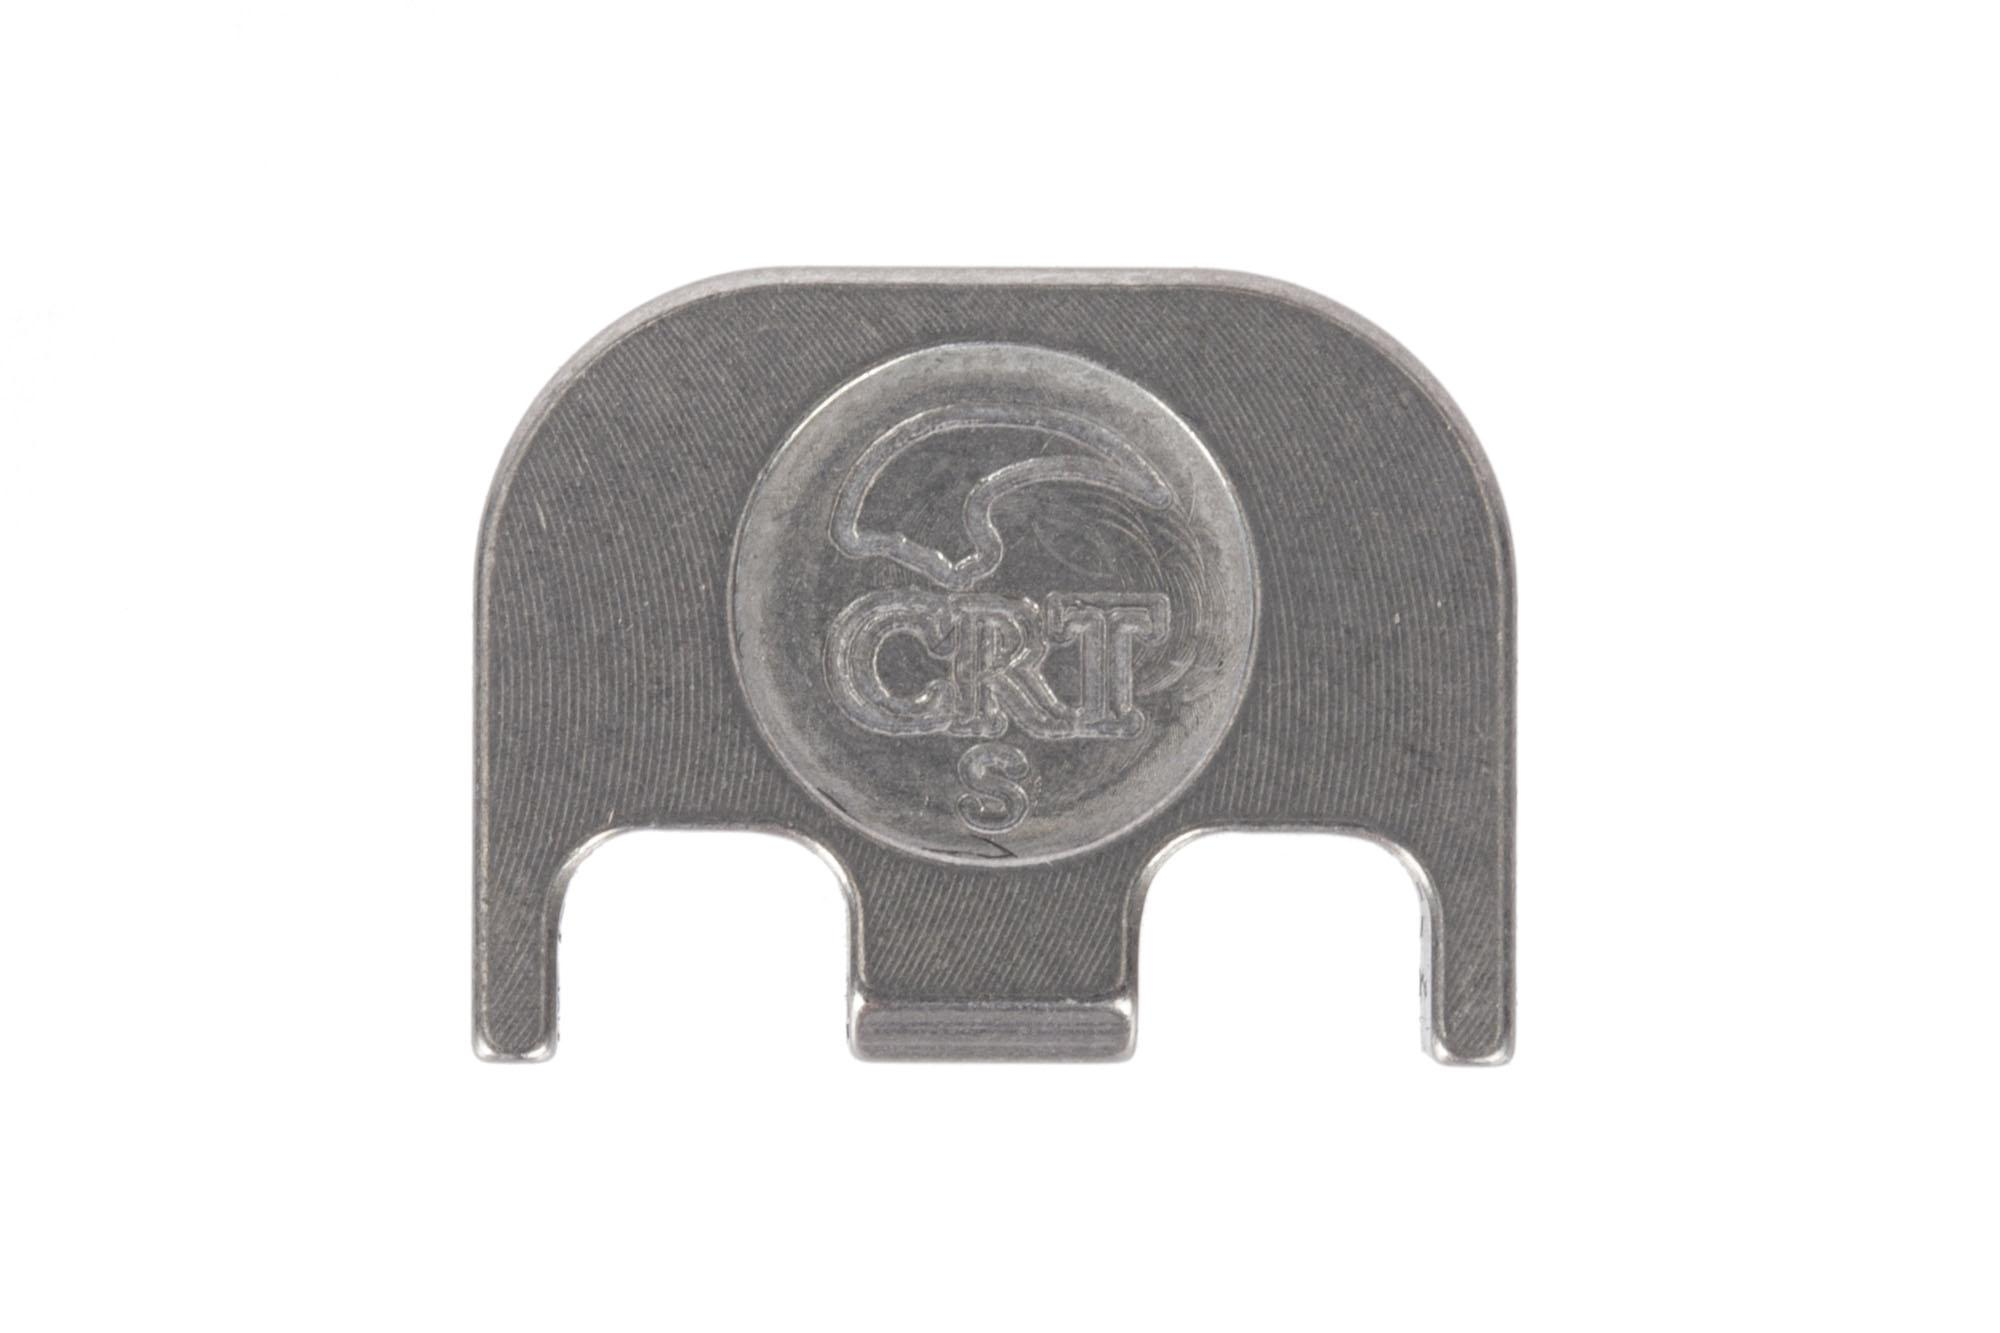 Classy Raptor Tactical III%er Standard Stainless Steel Glock Back Plate - Brushed